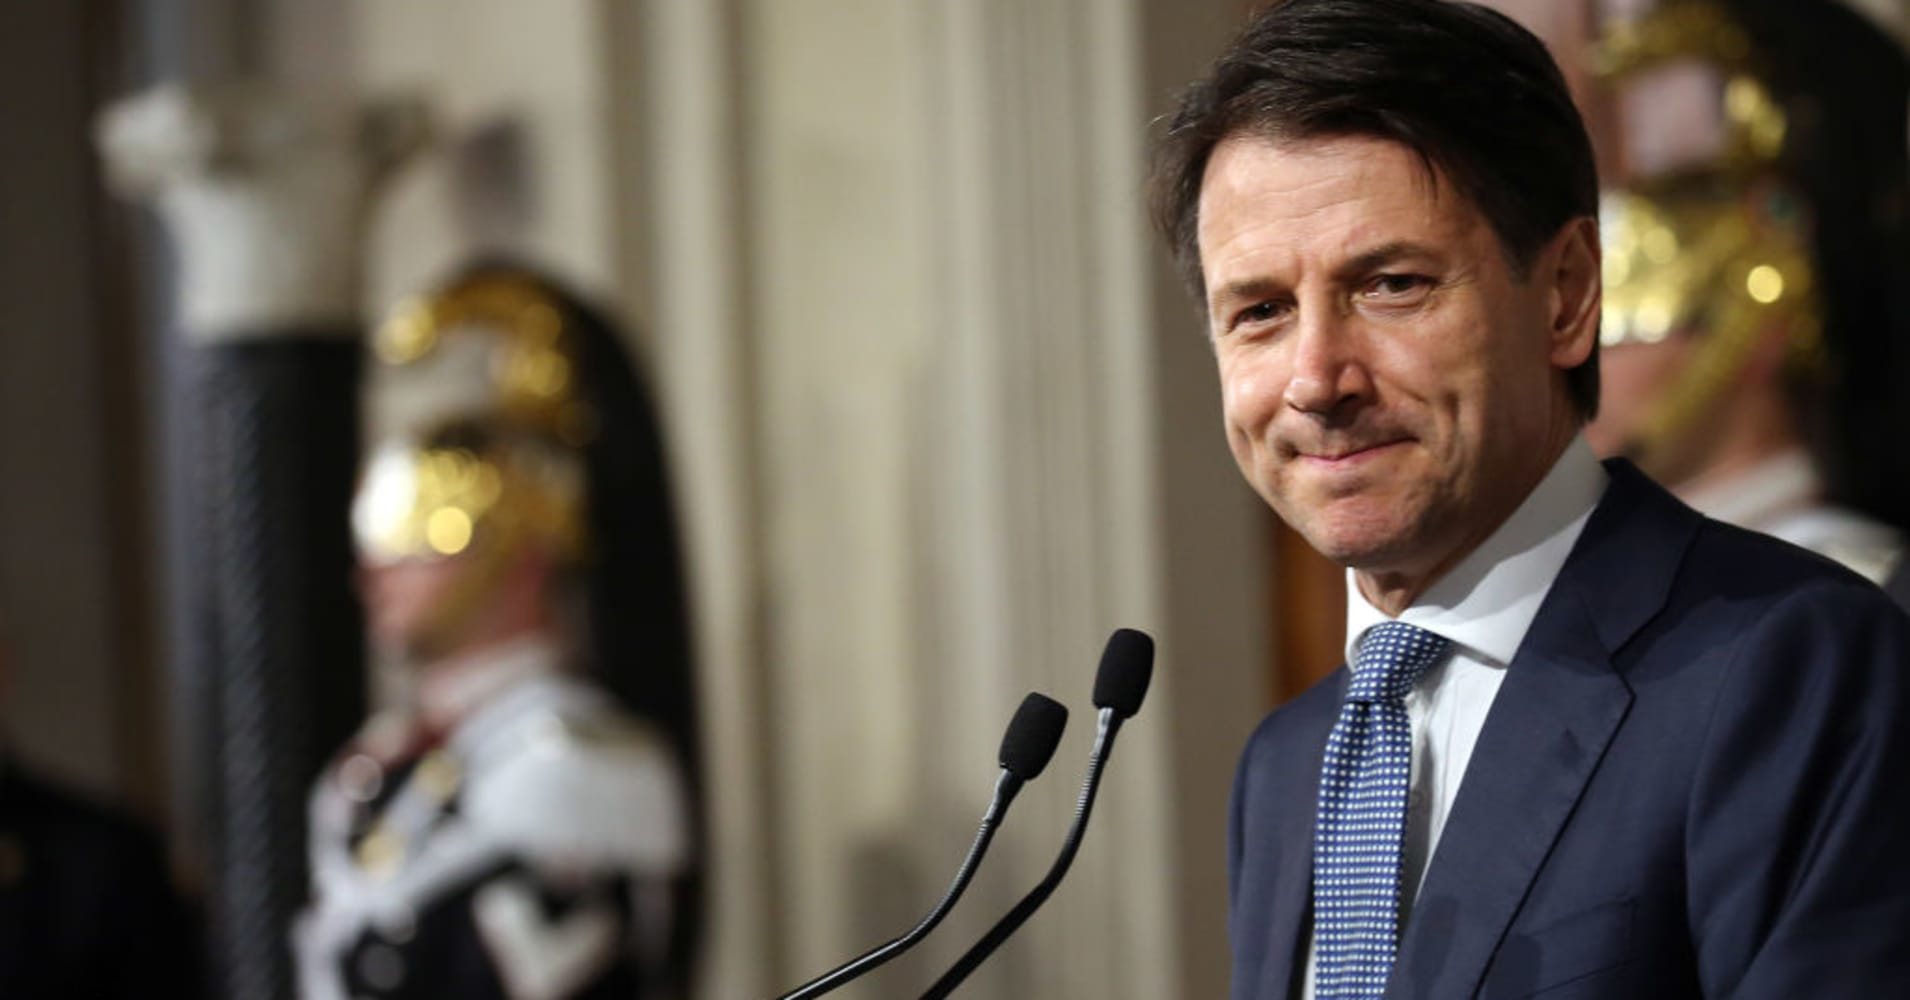 Italy sees anti-establishment government sworn in after roiling global markets